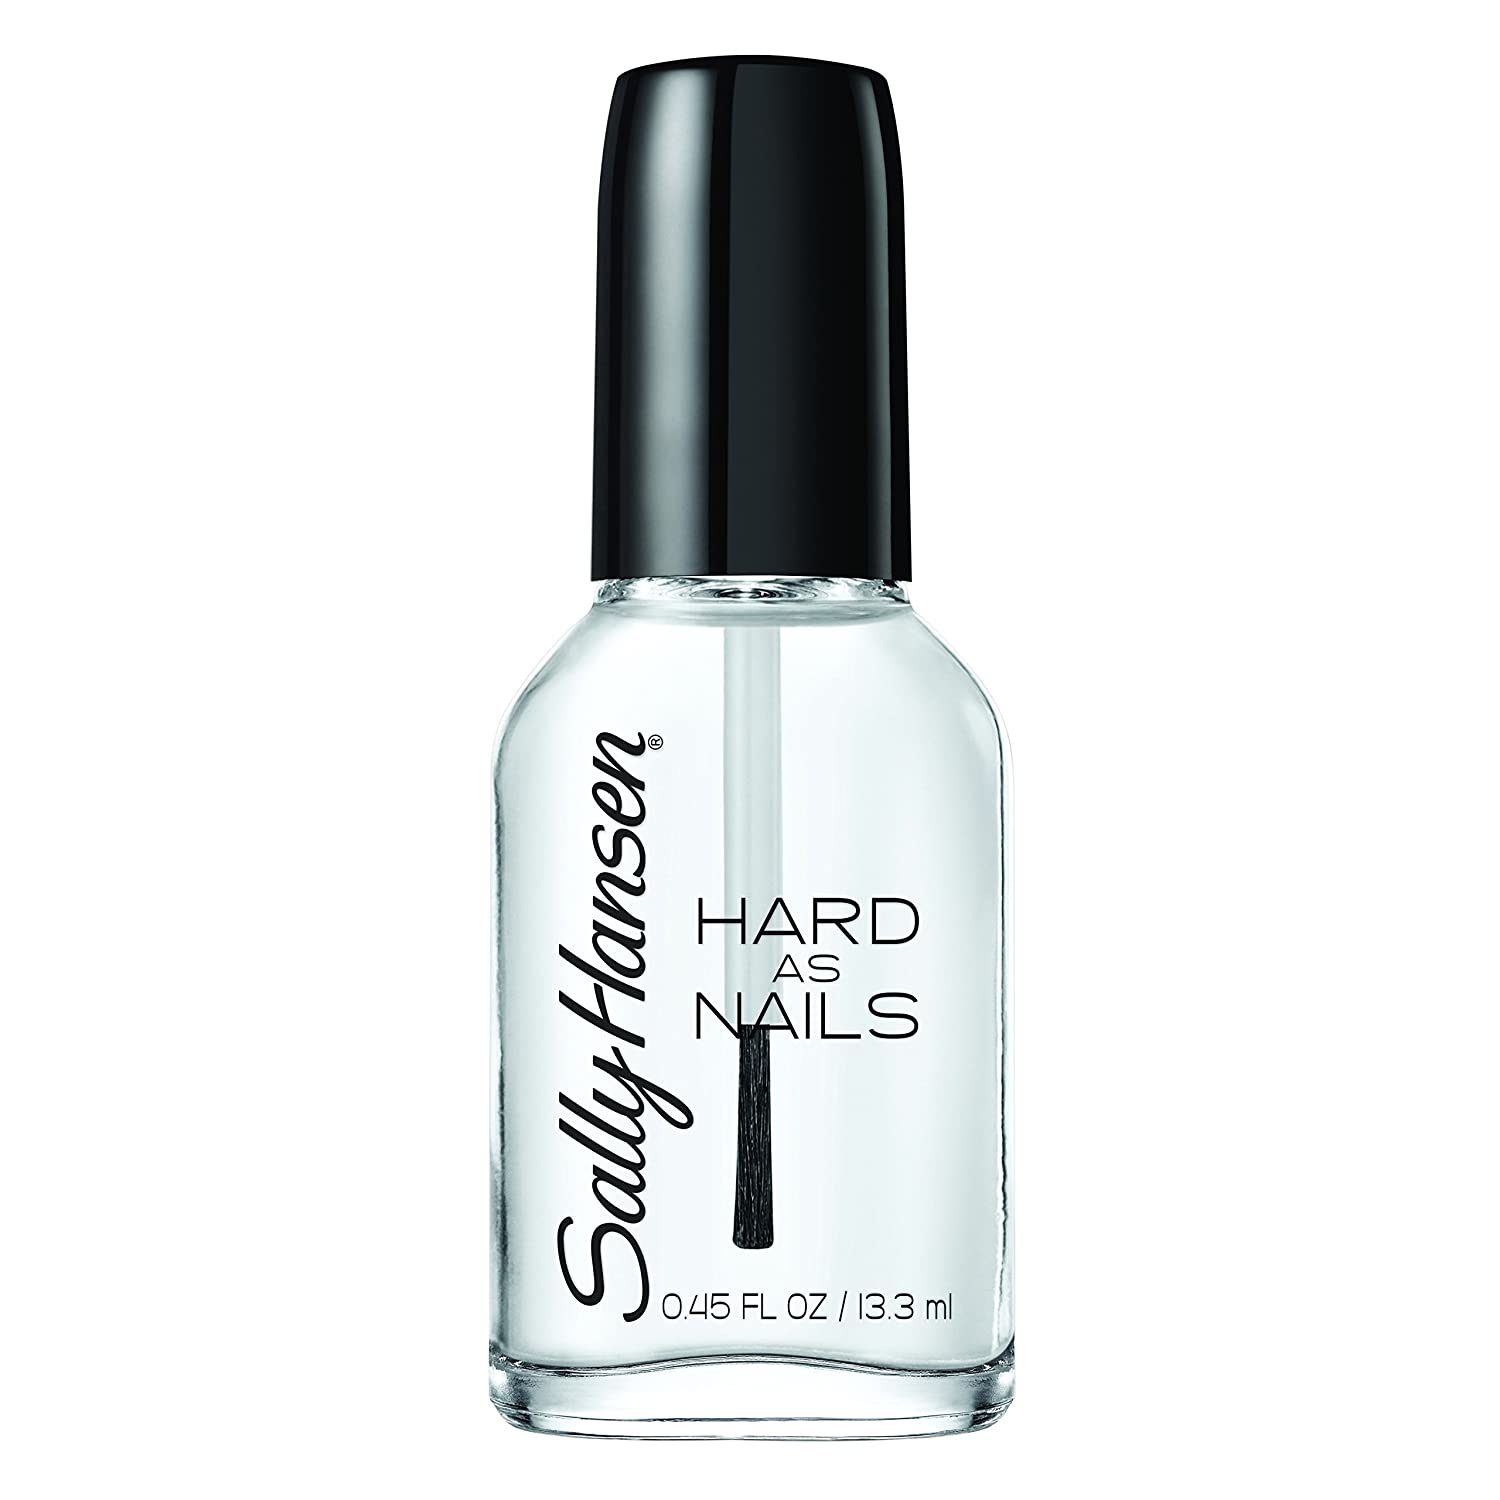 Sally Hansen Hard as Nails Nail Polish, Crystal Clear, 0.45 Fluid Ounce